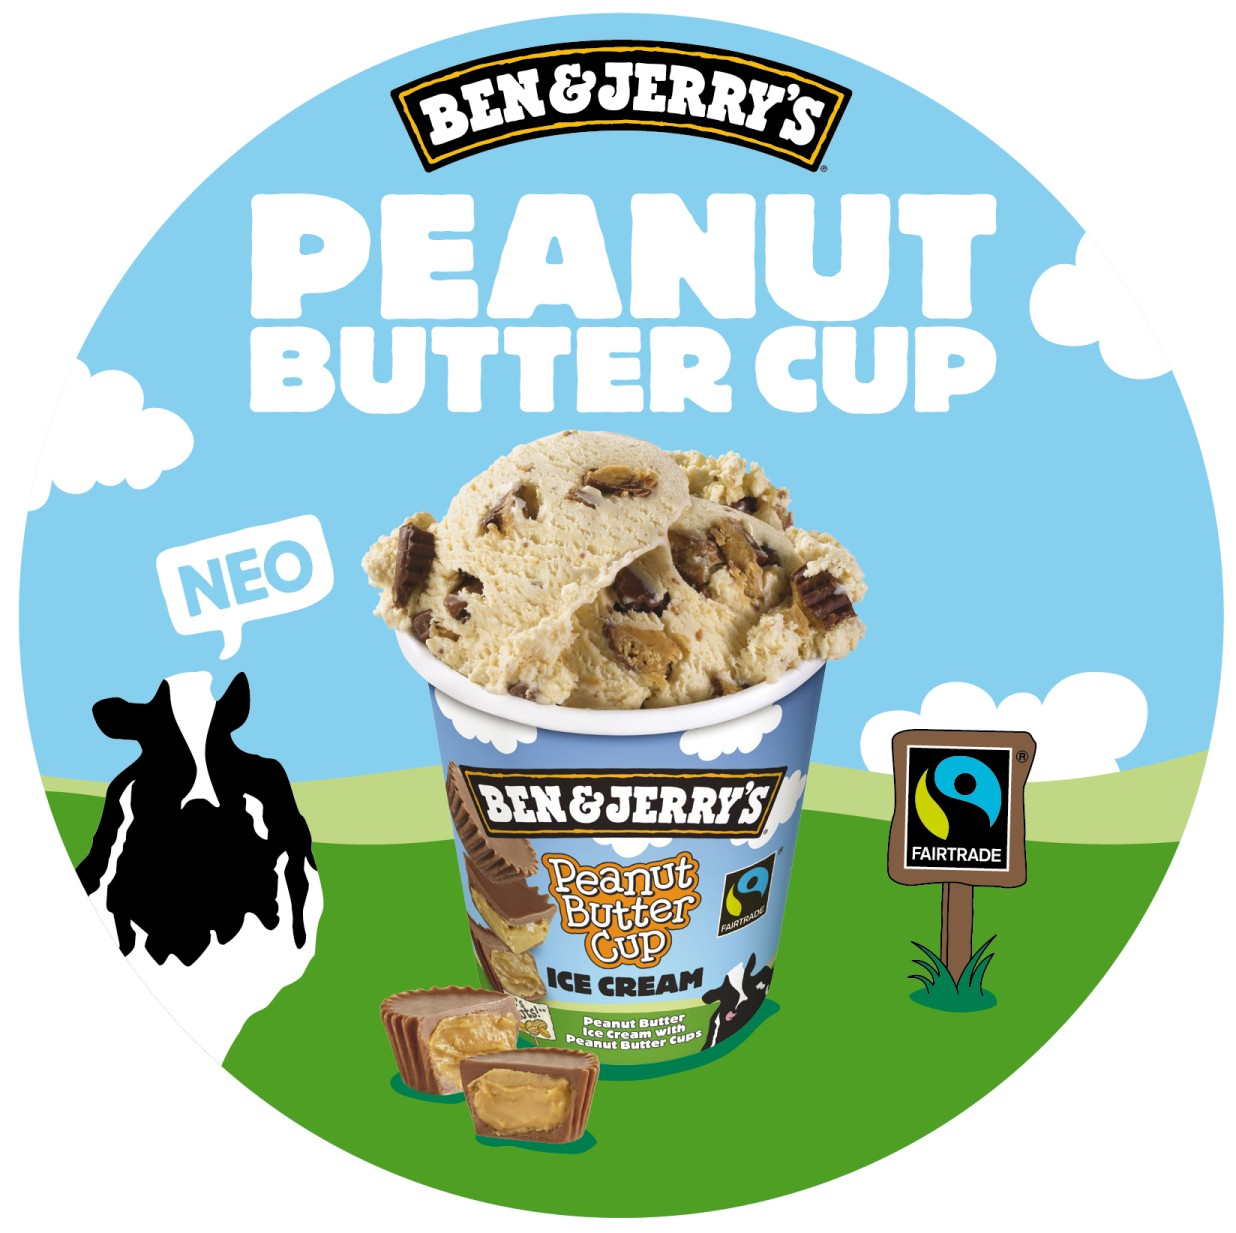 Peanut Butter Cup 2 (1236 x 1233)